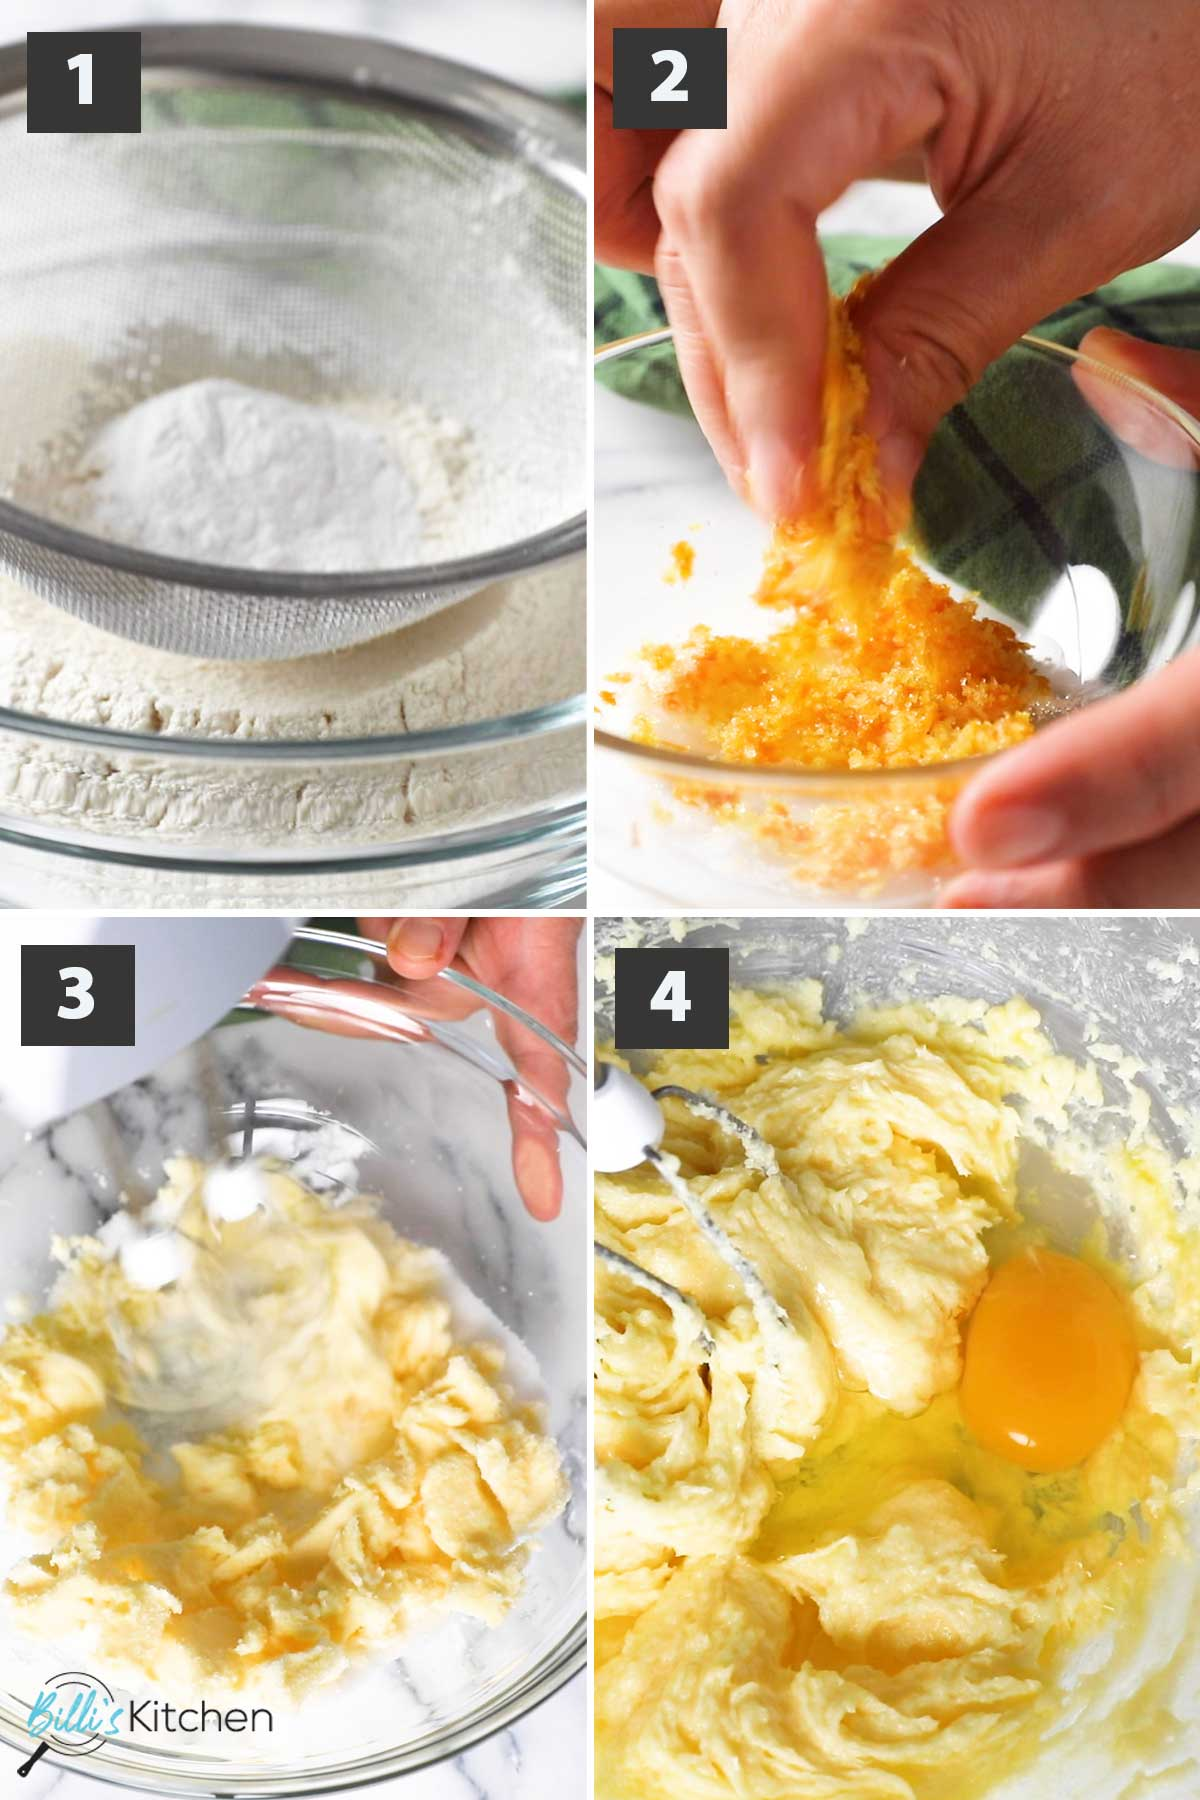 Latest First part of a collage of images showing the step by step process on how to prepare orange pound cake.